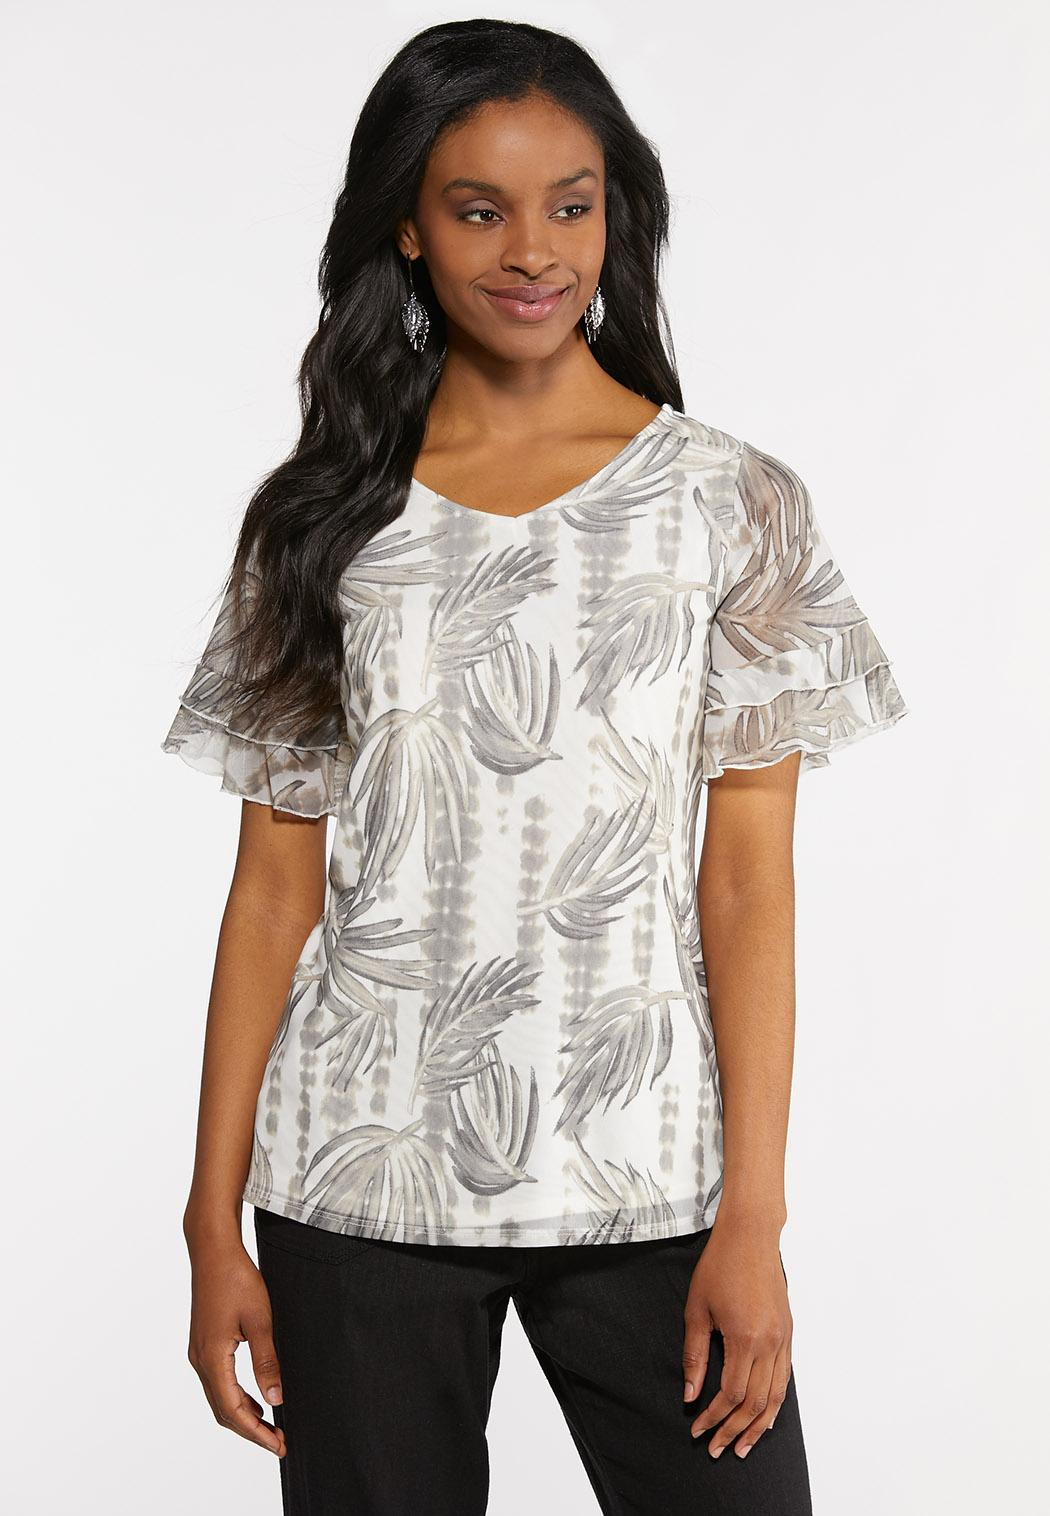 Plus Size Mesh Palm Top Tops Cato Fashions